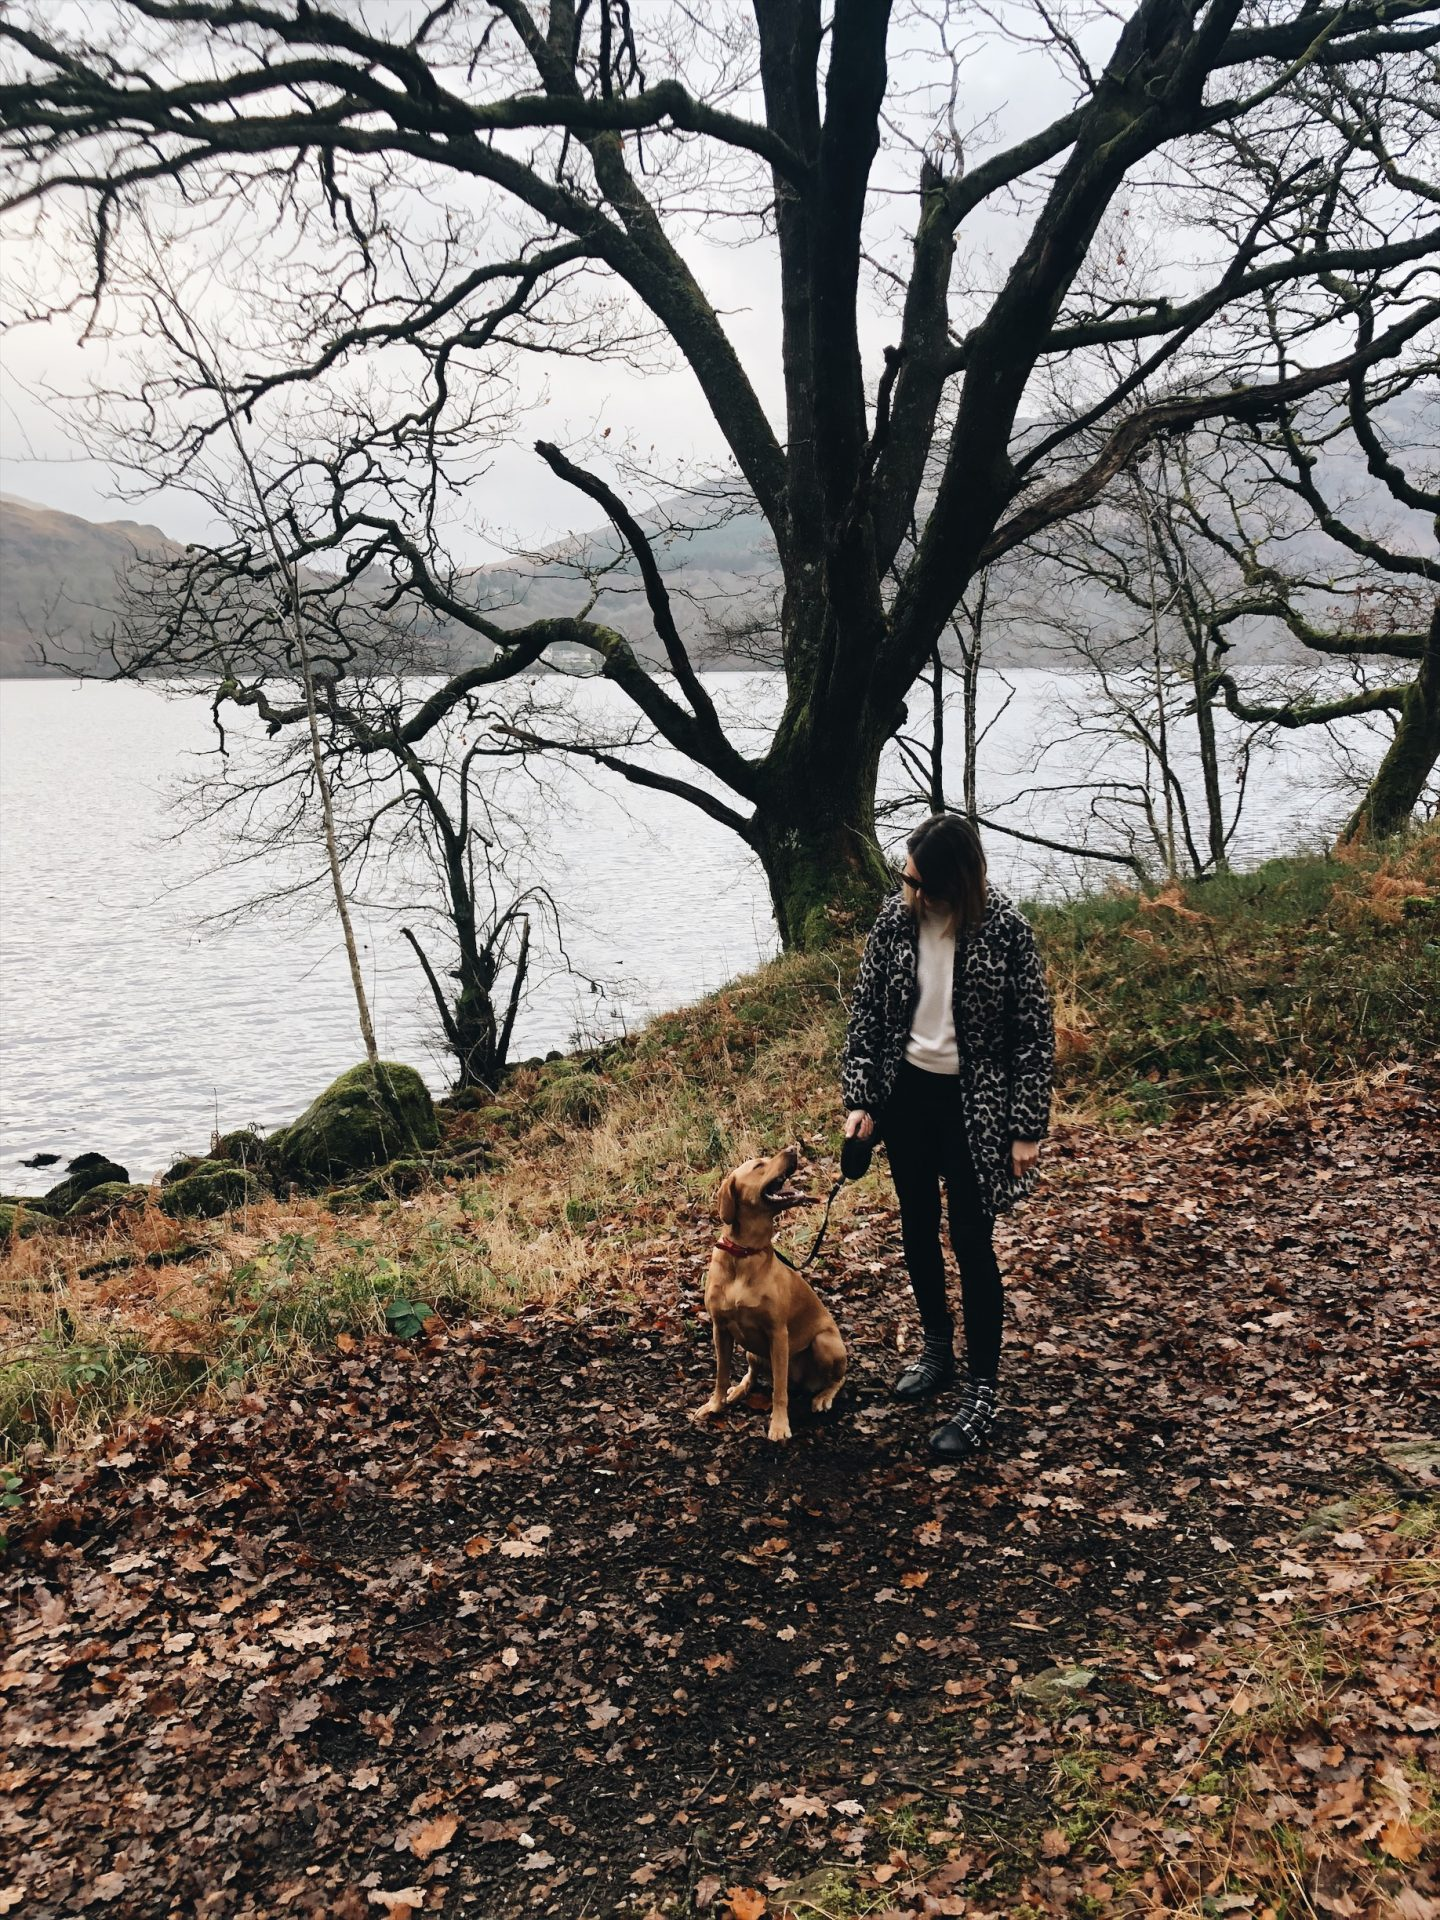 DOG-FRIENDLY LODGE STAY AT LOCH LOMOND, SCOTLAND